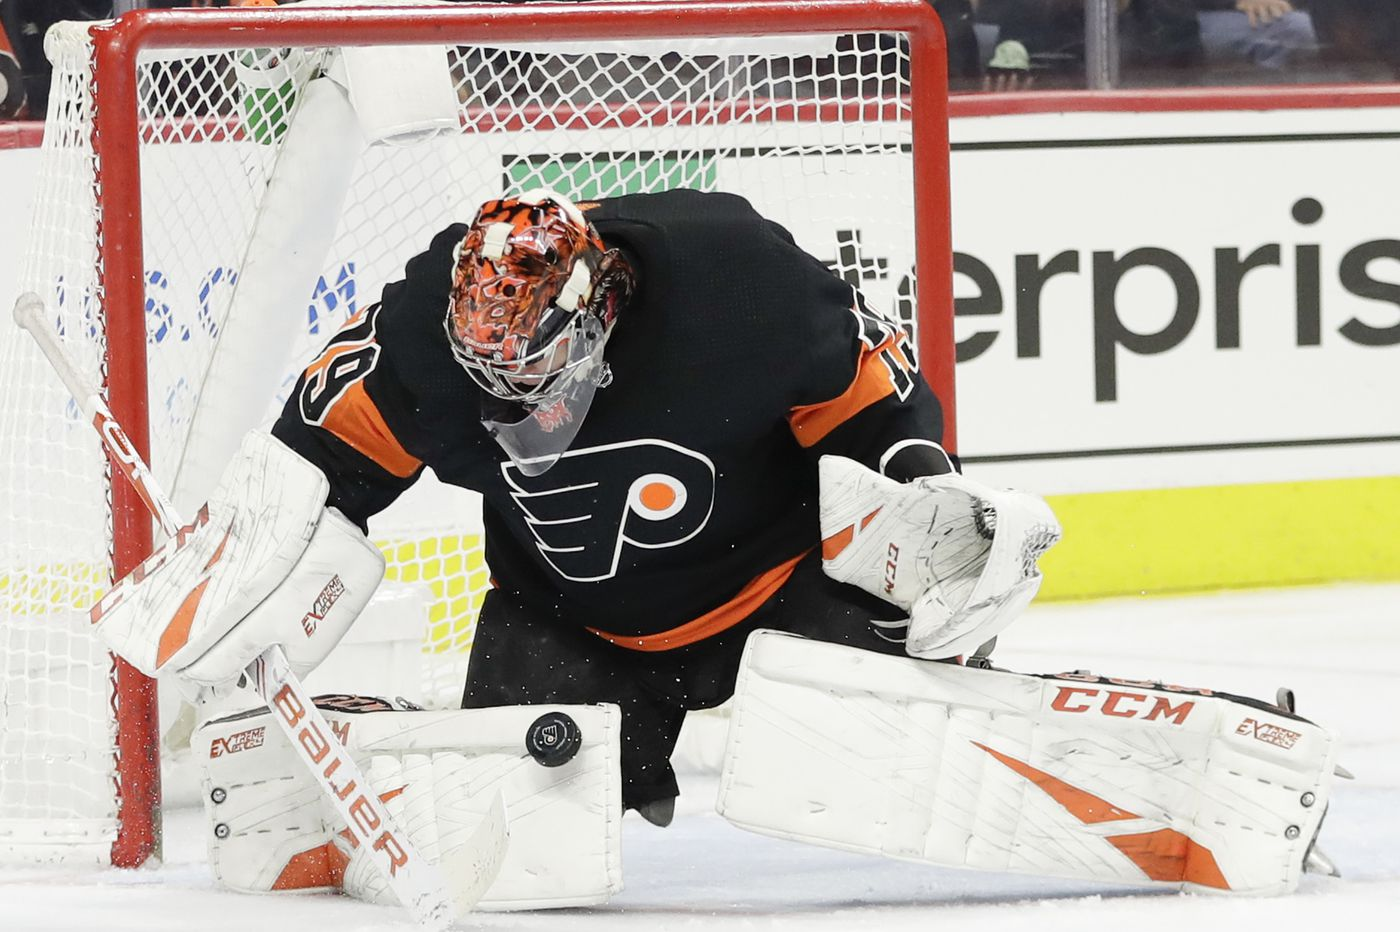 Carter Hart returning for Flyers and facing Florida Panthers and Sergei Bobrovsky on Monday